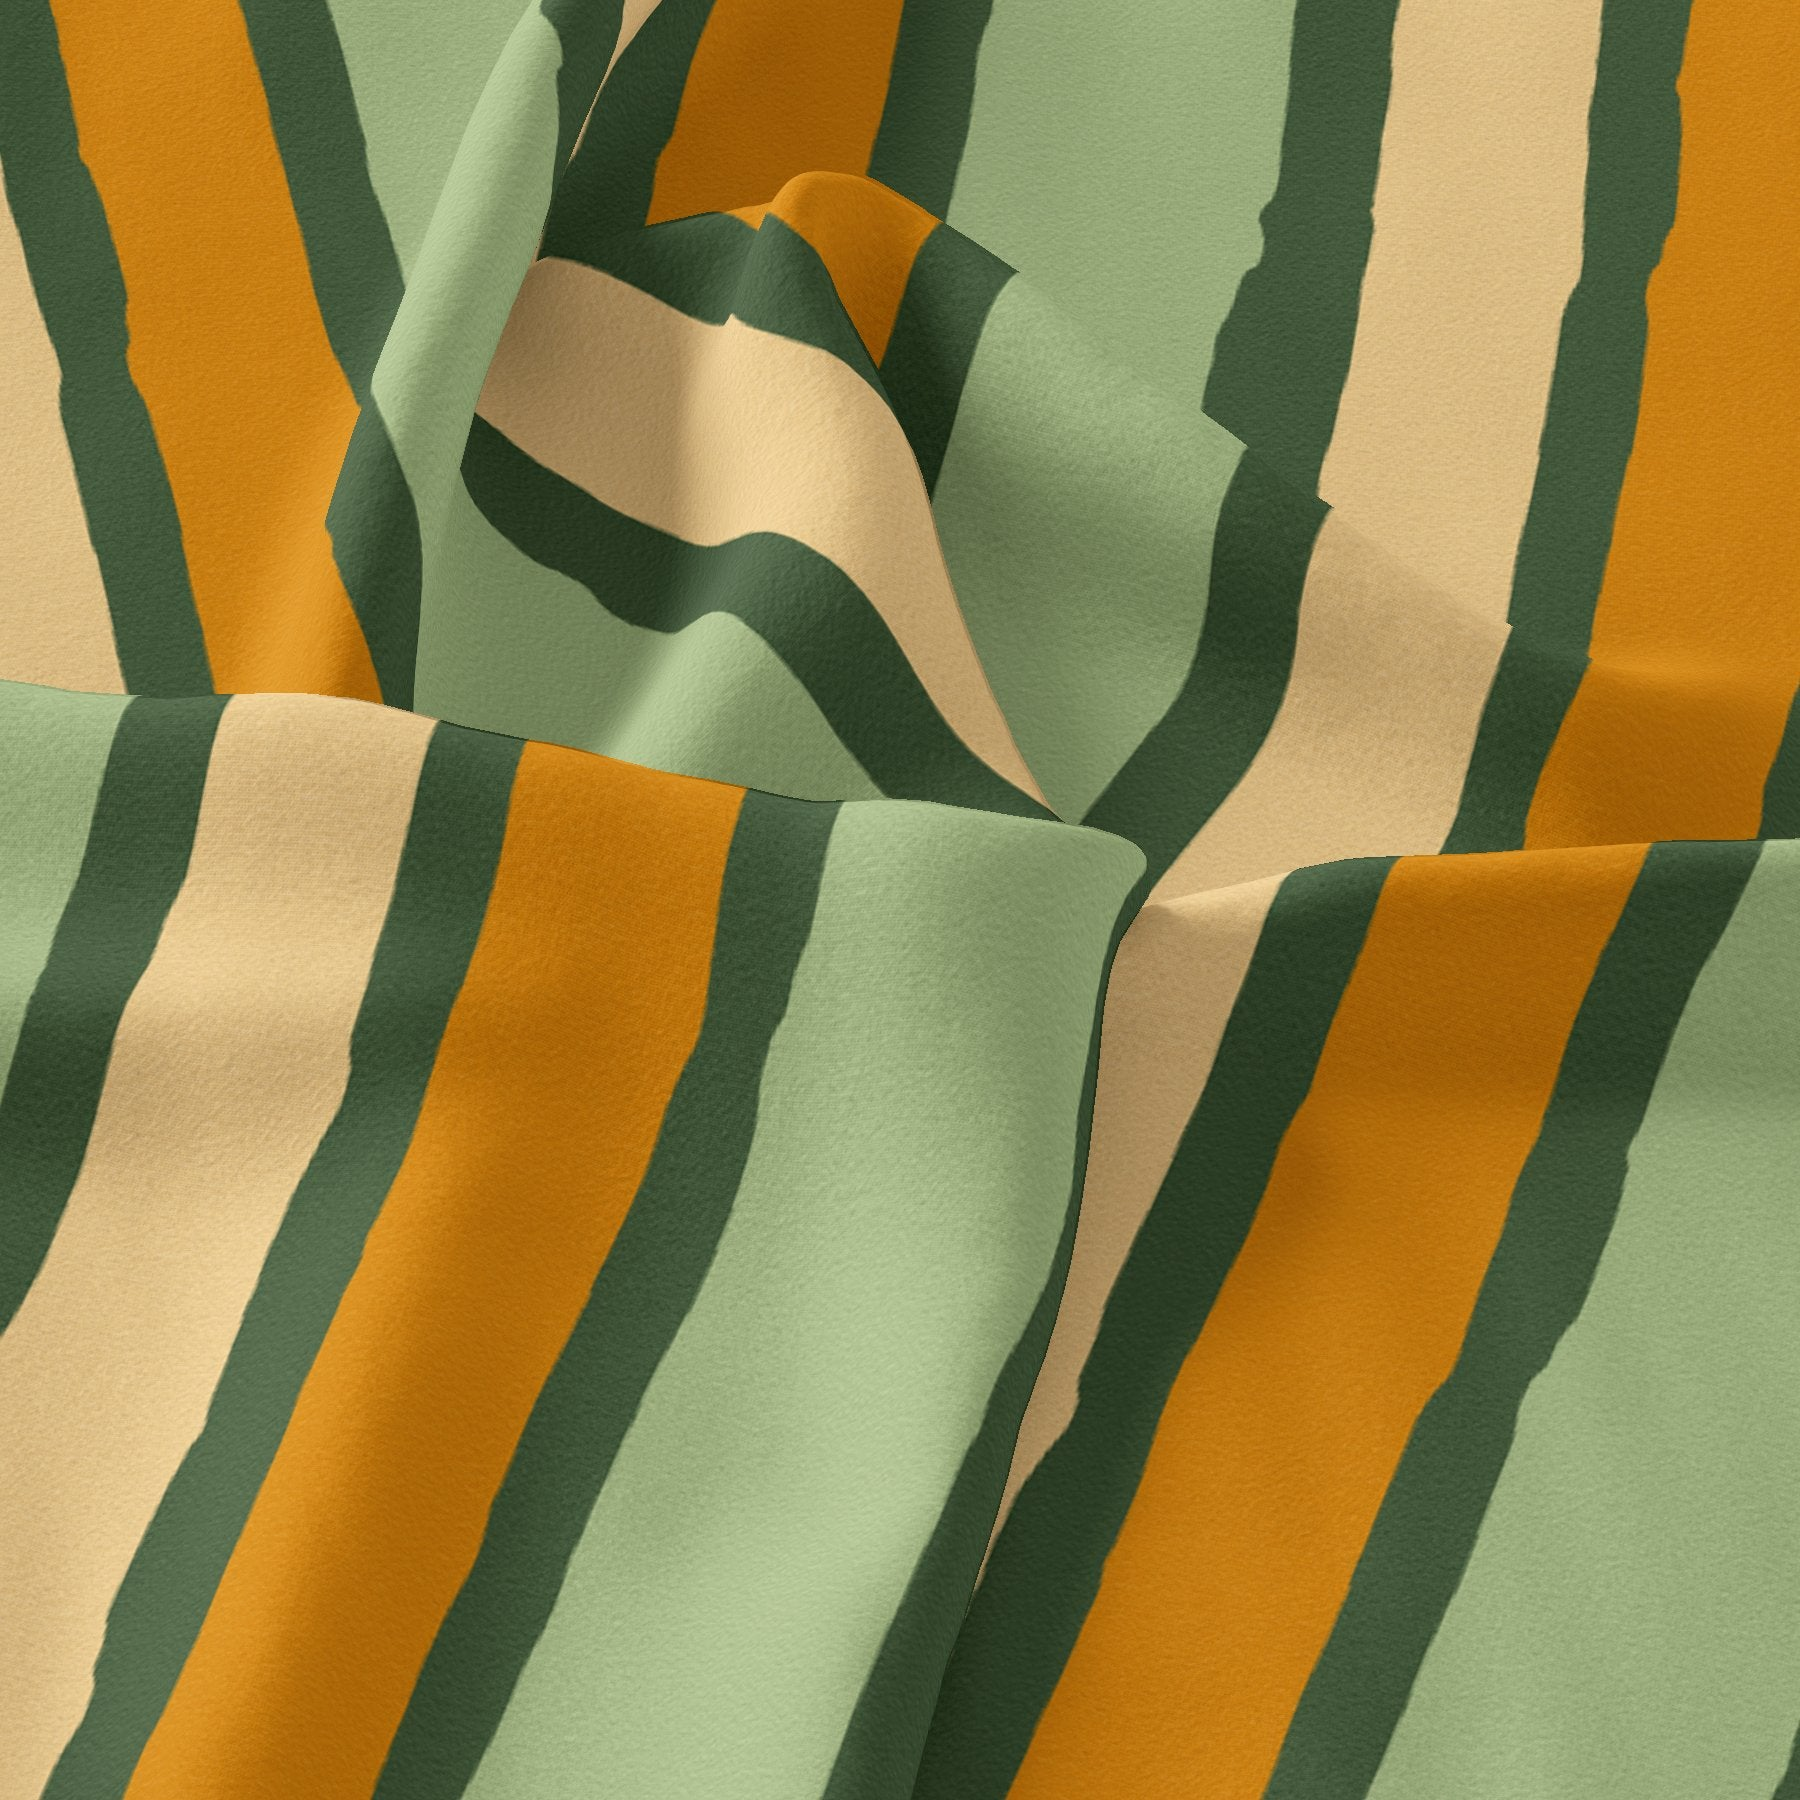 Yellow Green Stripes Digital Printed Fabric - Pure Georgette